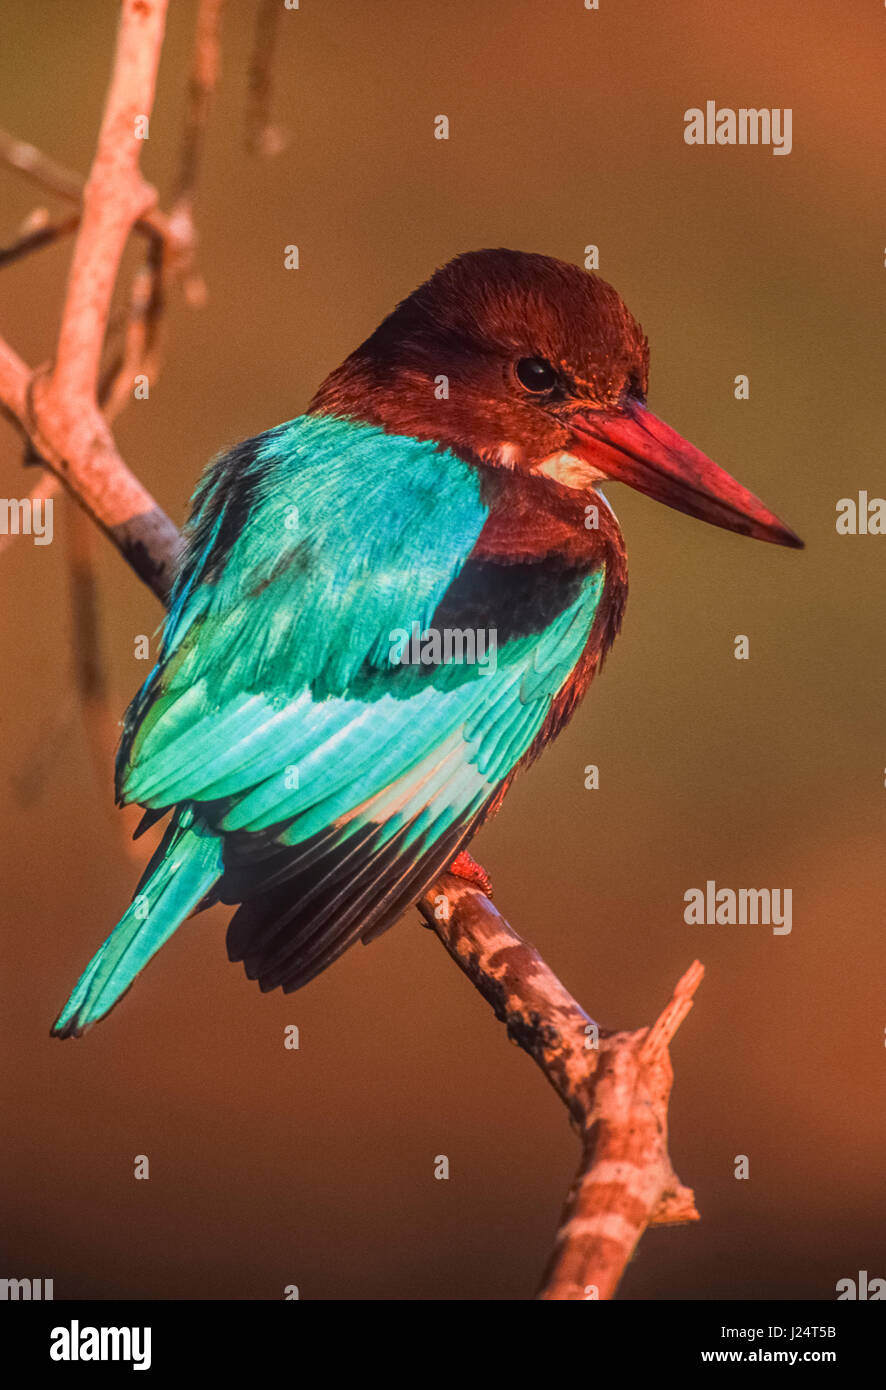 White-throated kingfisher, (Halcyon smyrnensis), also known as White-breasted kingfisher, perched on branch, Keoladeo - Stock Image